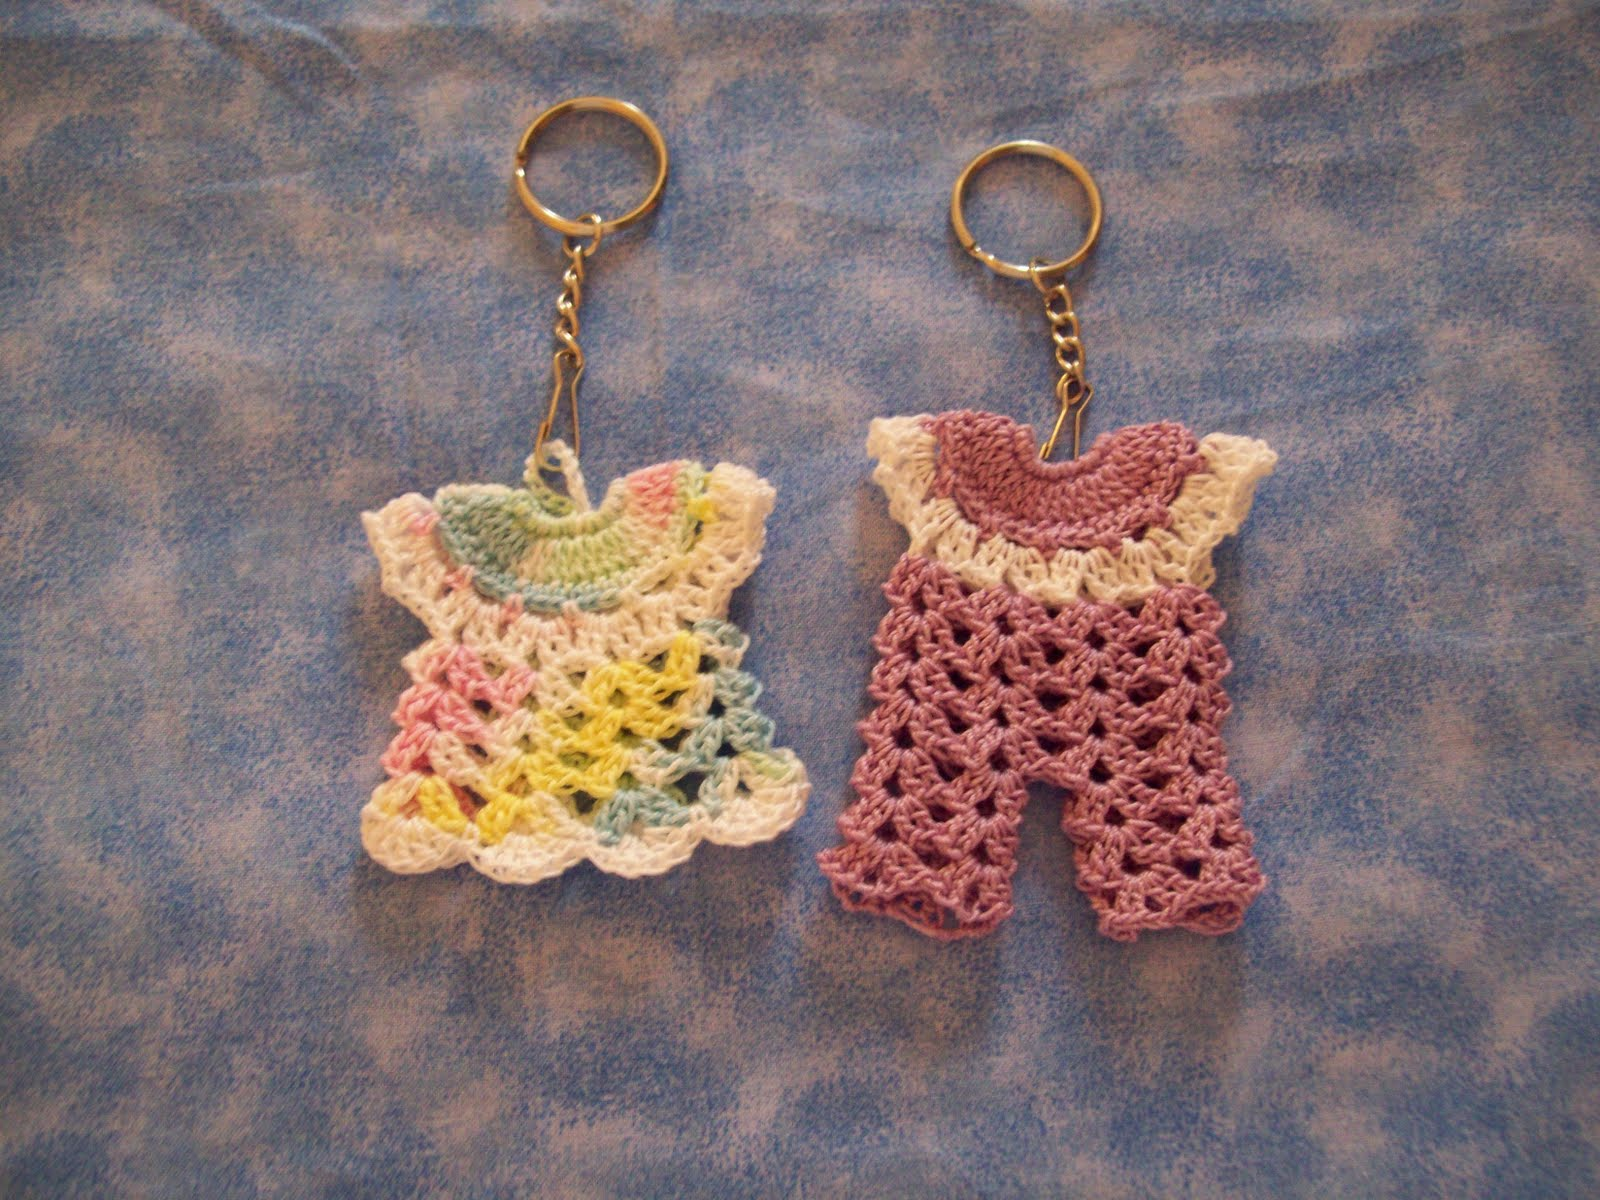 Crochet Keychain : Crochet Princess: Keychains and Crochet